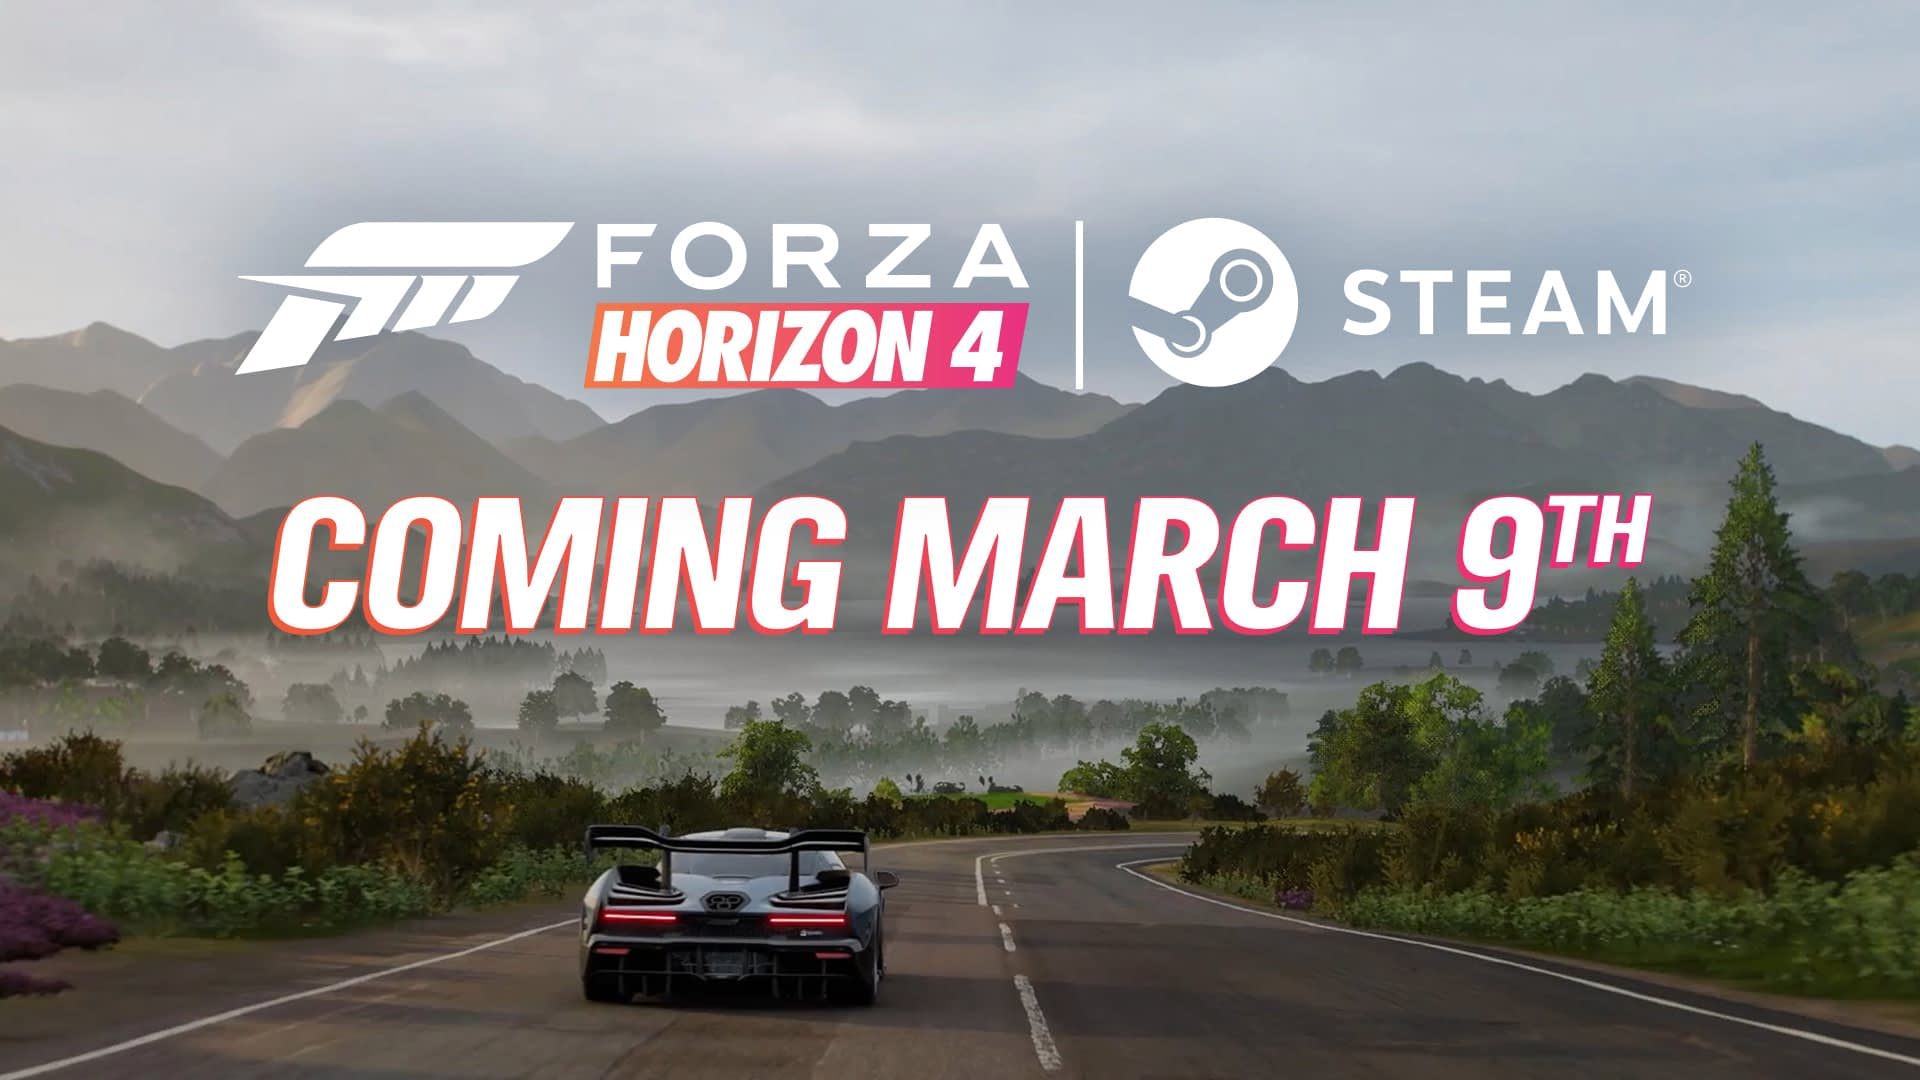 Forza Horizon 4 Races to Steam on March 9 1